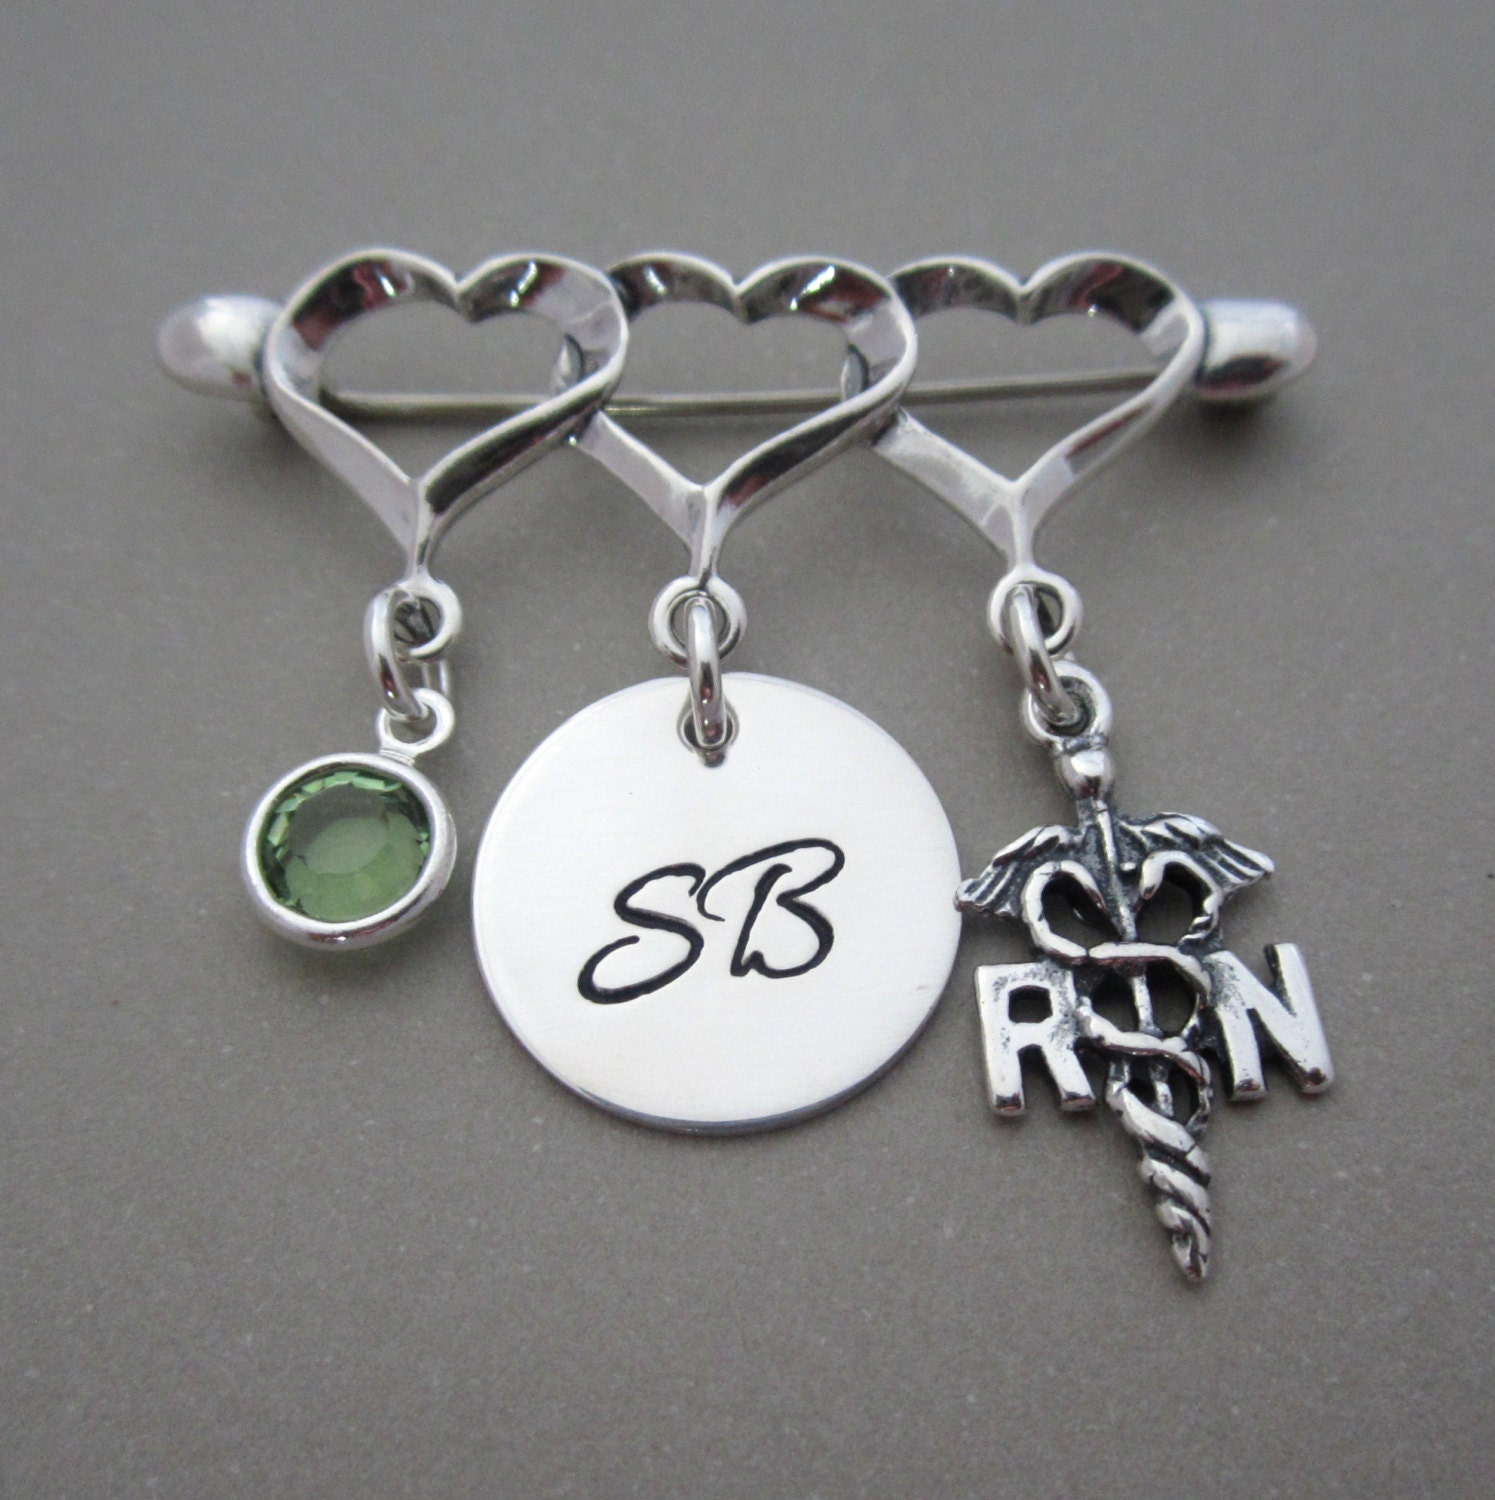 rn lpn gift sterling silver jewelry by shinymetals